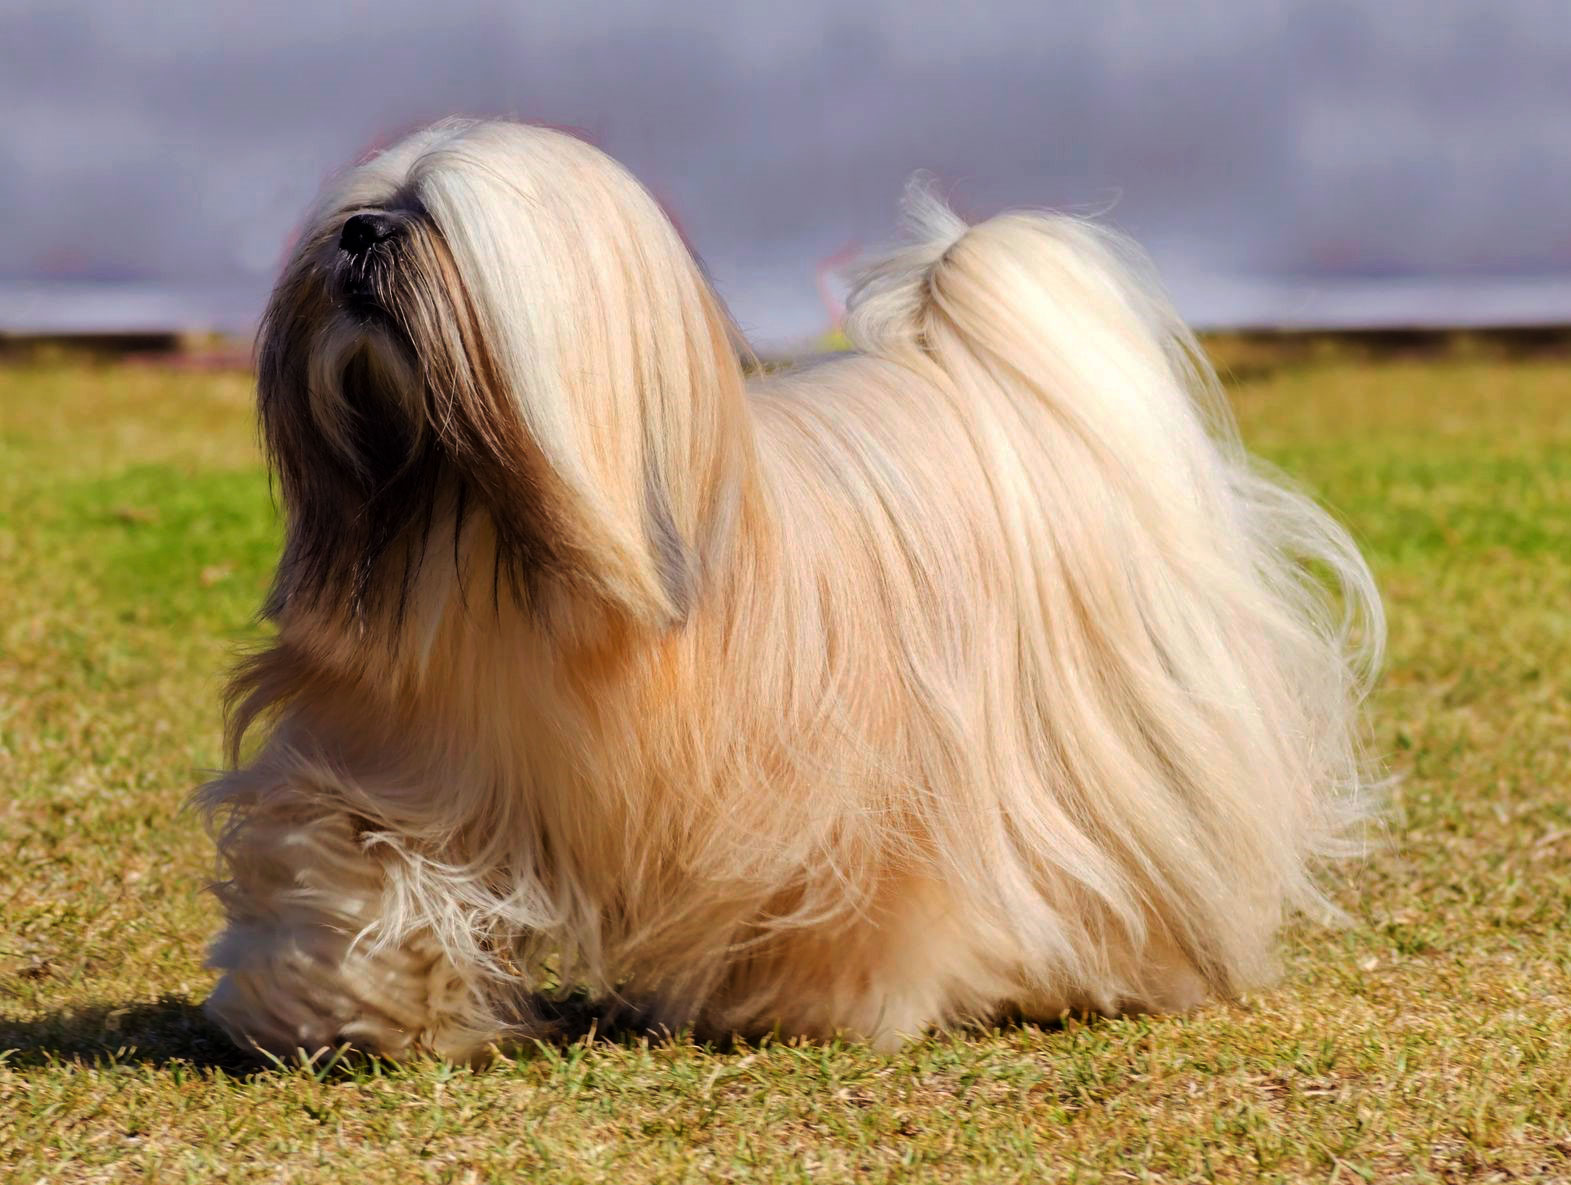 Lhasa Apso – An intelligent, confident breed with a playful side